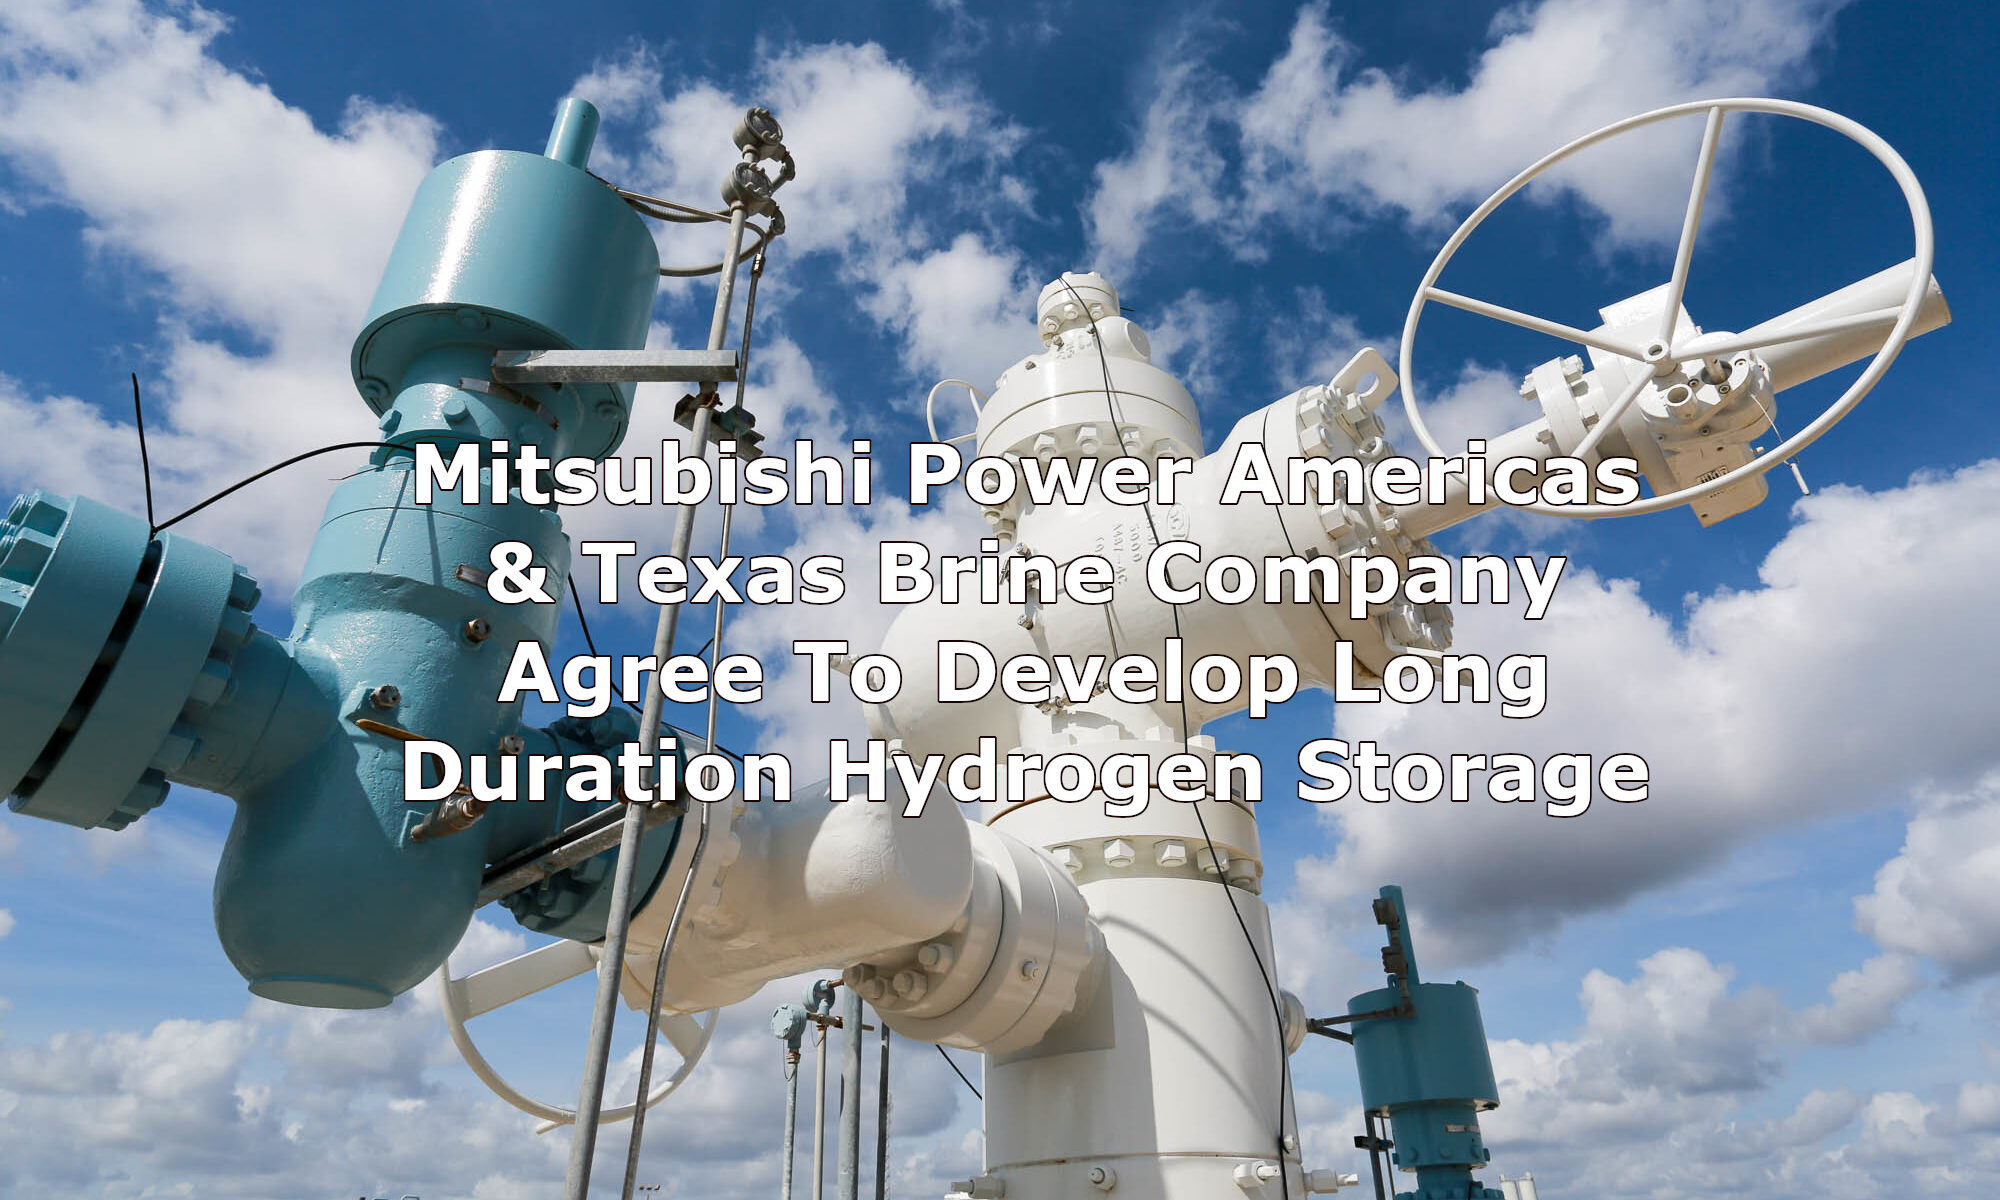 Mitsubishi Power Americas & Texas Brine Company Agree To Develop Long Duration Hydrogen Storage